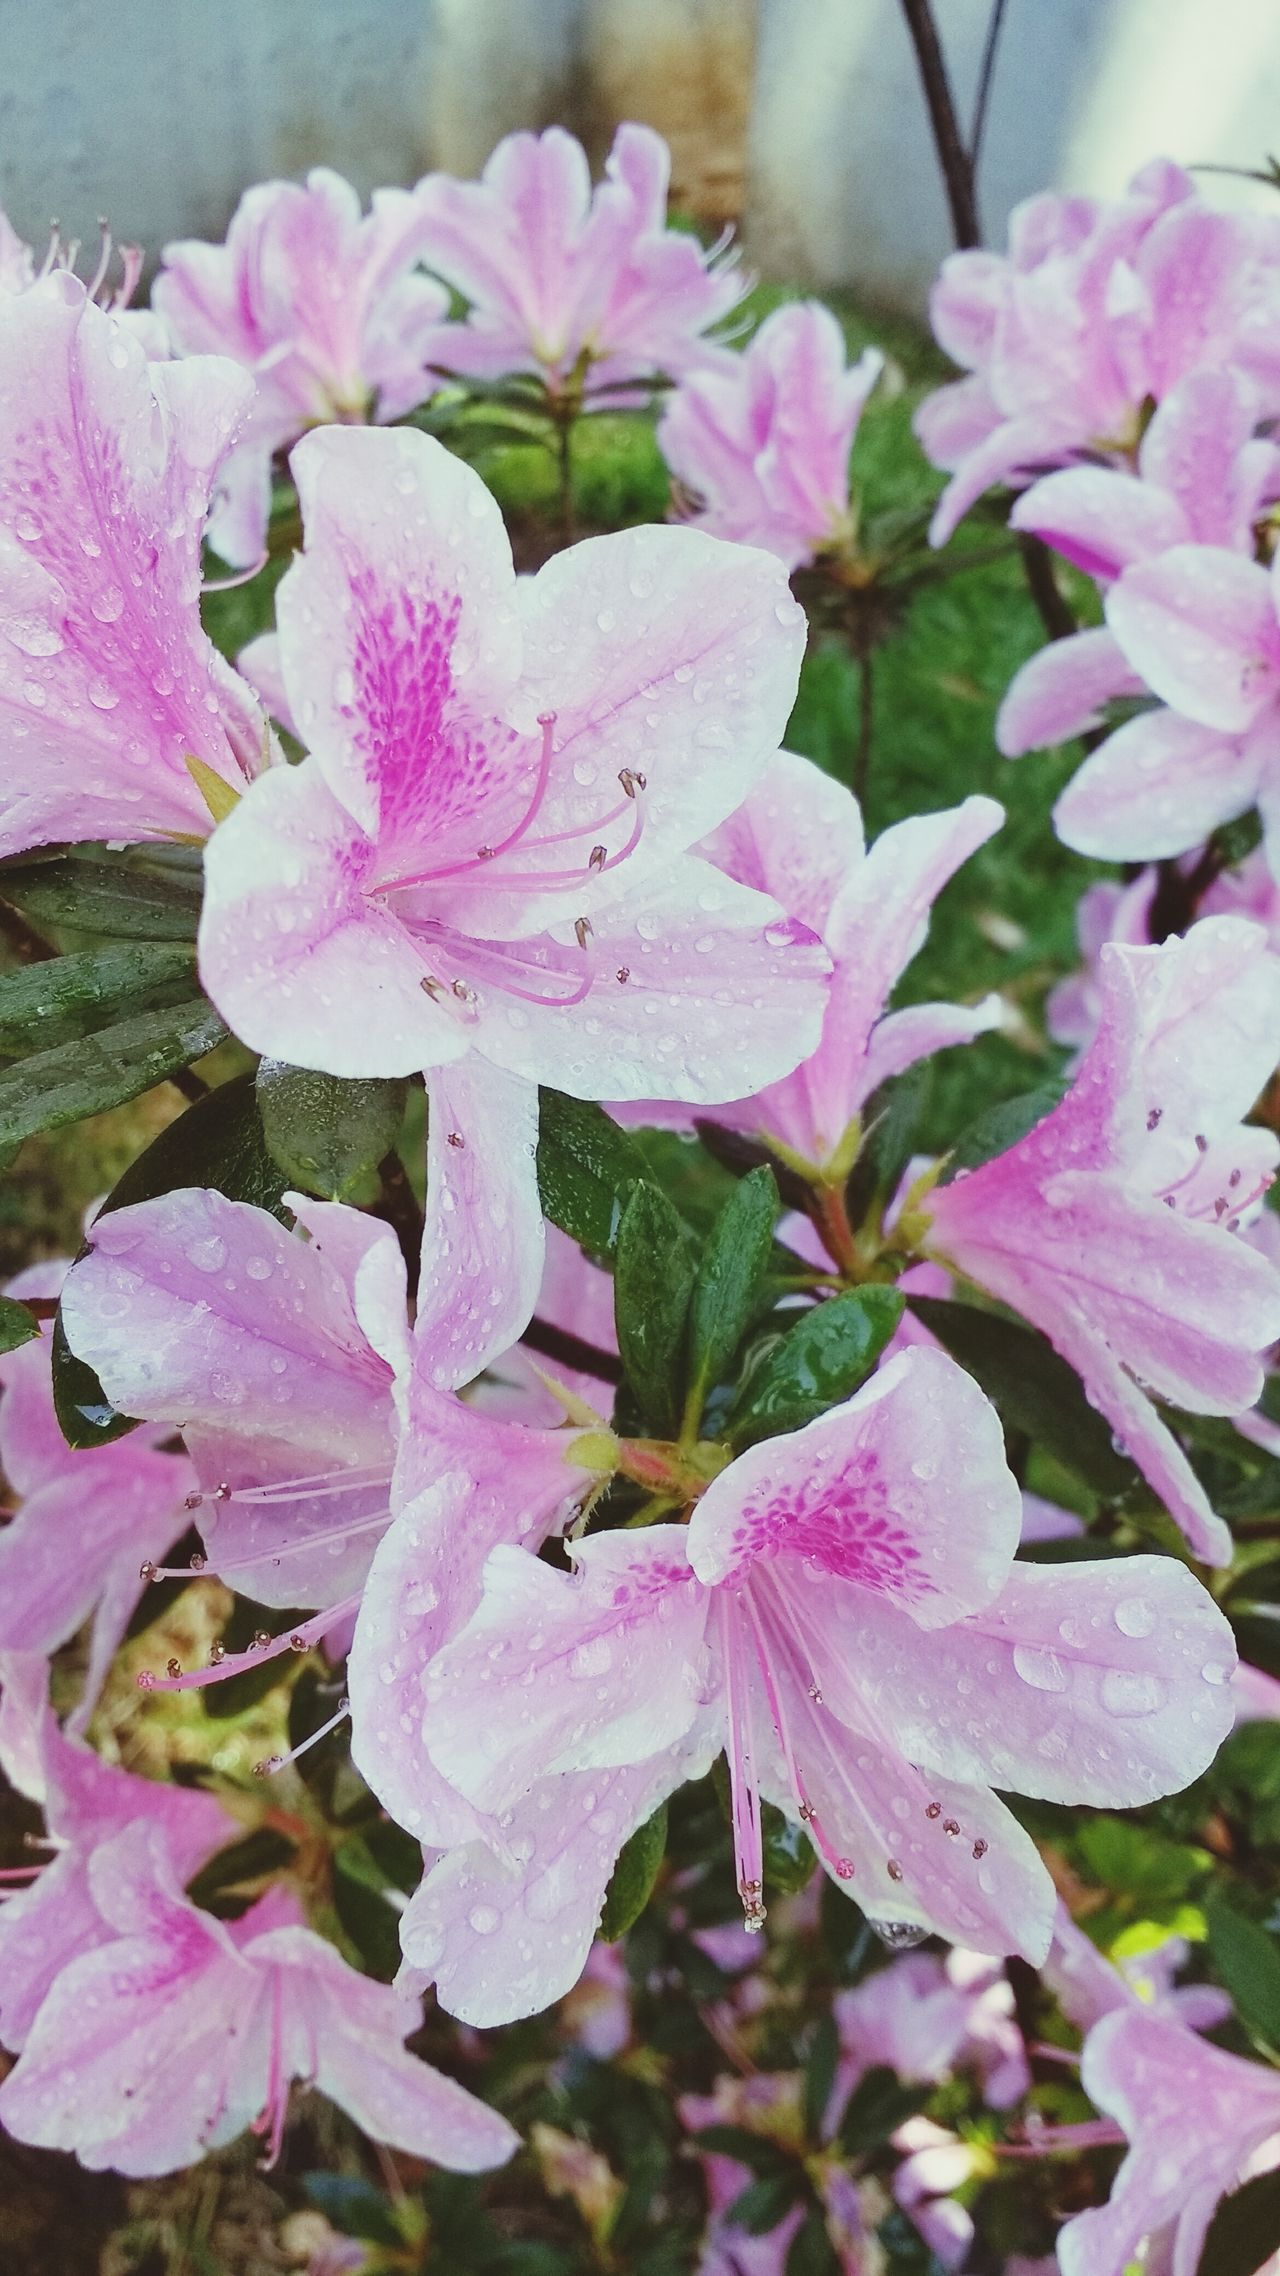 Flower Nature Pink Color Petal Fragility Freshness Flower Head Beauty In Nature Growth Plant Rhododendron Close-up No People Outdoors Day Water